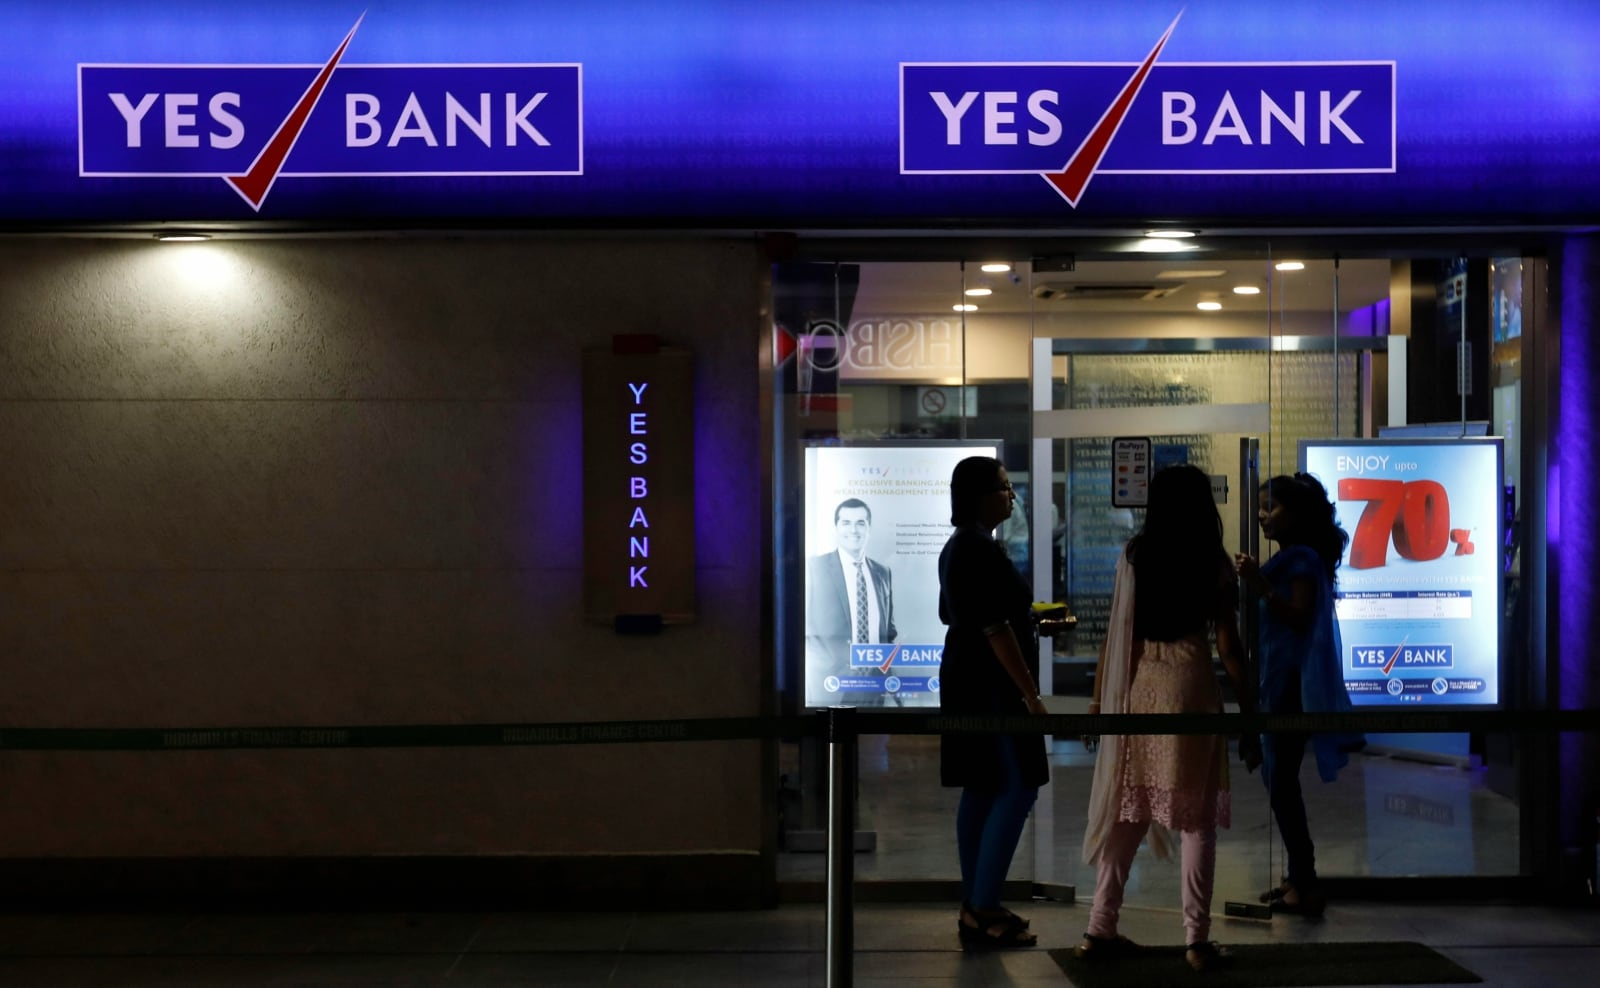 Yes Bank: The Reserve Bank of India (RBI) may impose a monetary penalty on Yes Bank for breaching the confidentiality norms of its communications exchange with the private bank. (Image: Reuters/Caption credits: IANS)